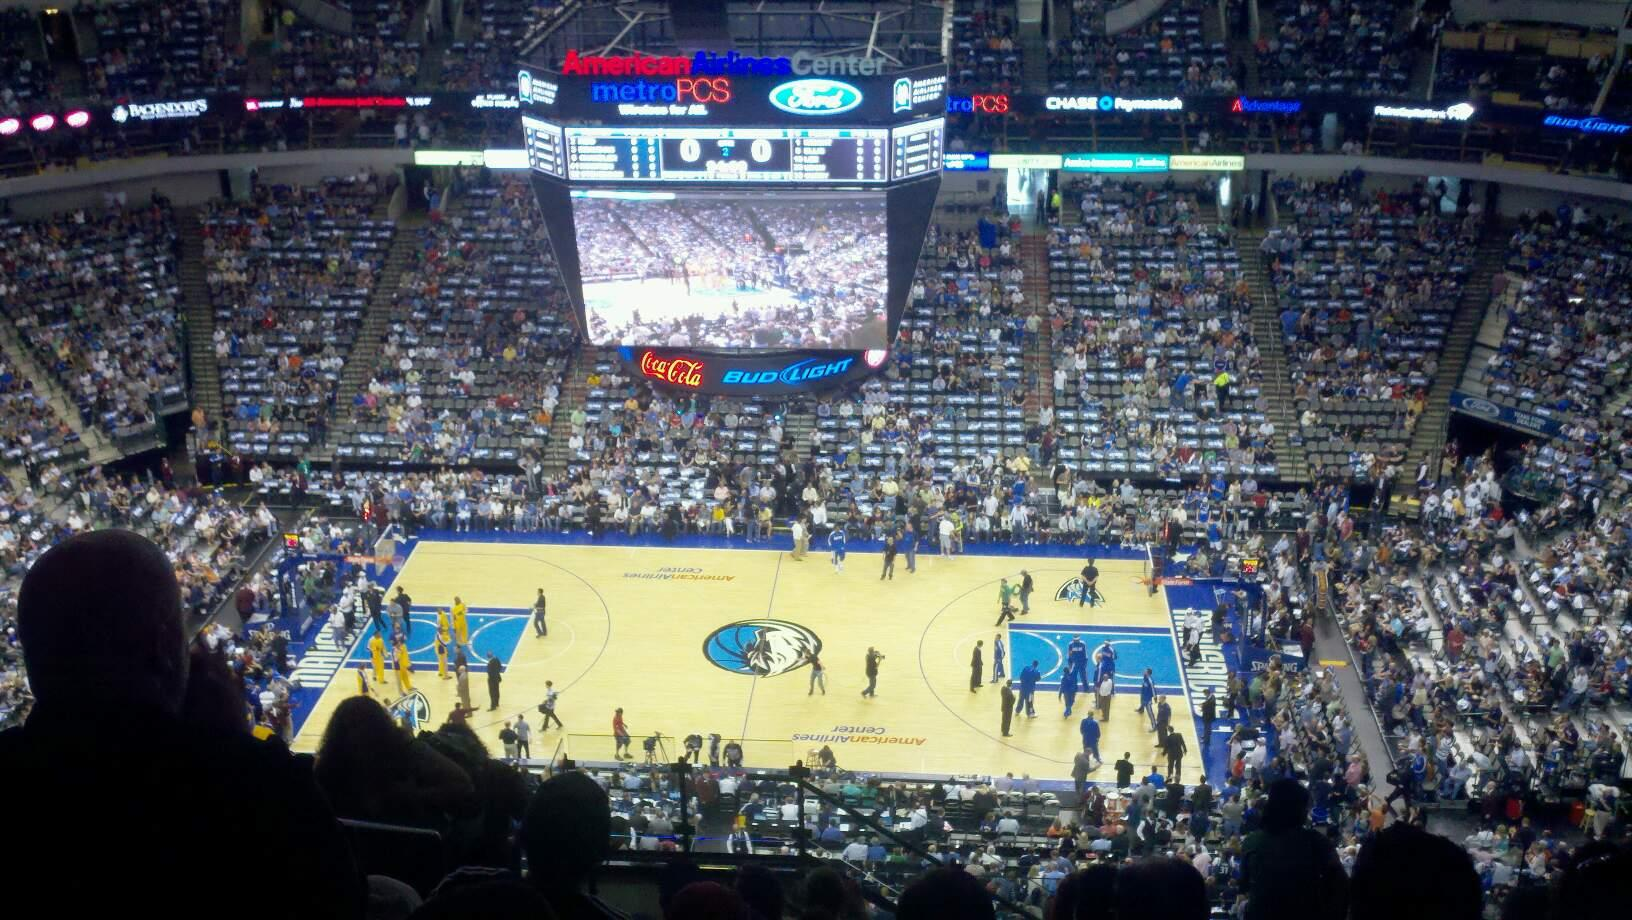 American Airlines Center Section 325 Row S Seat 18